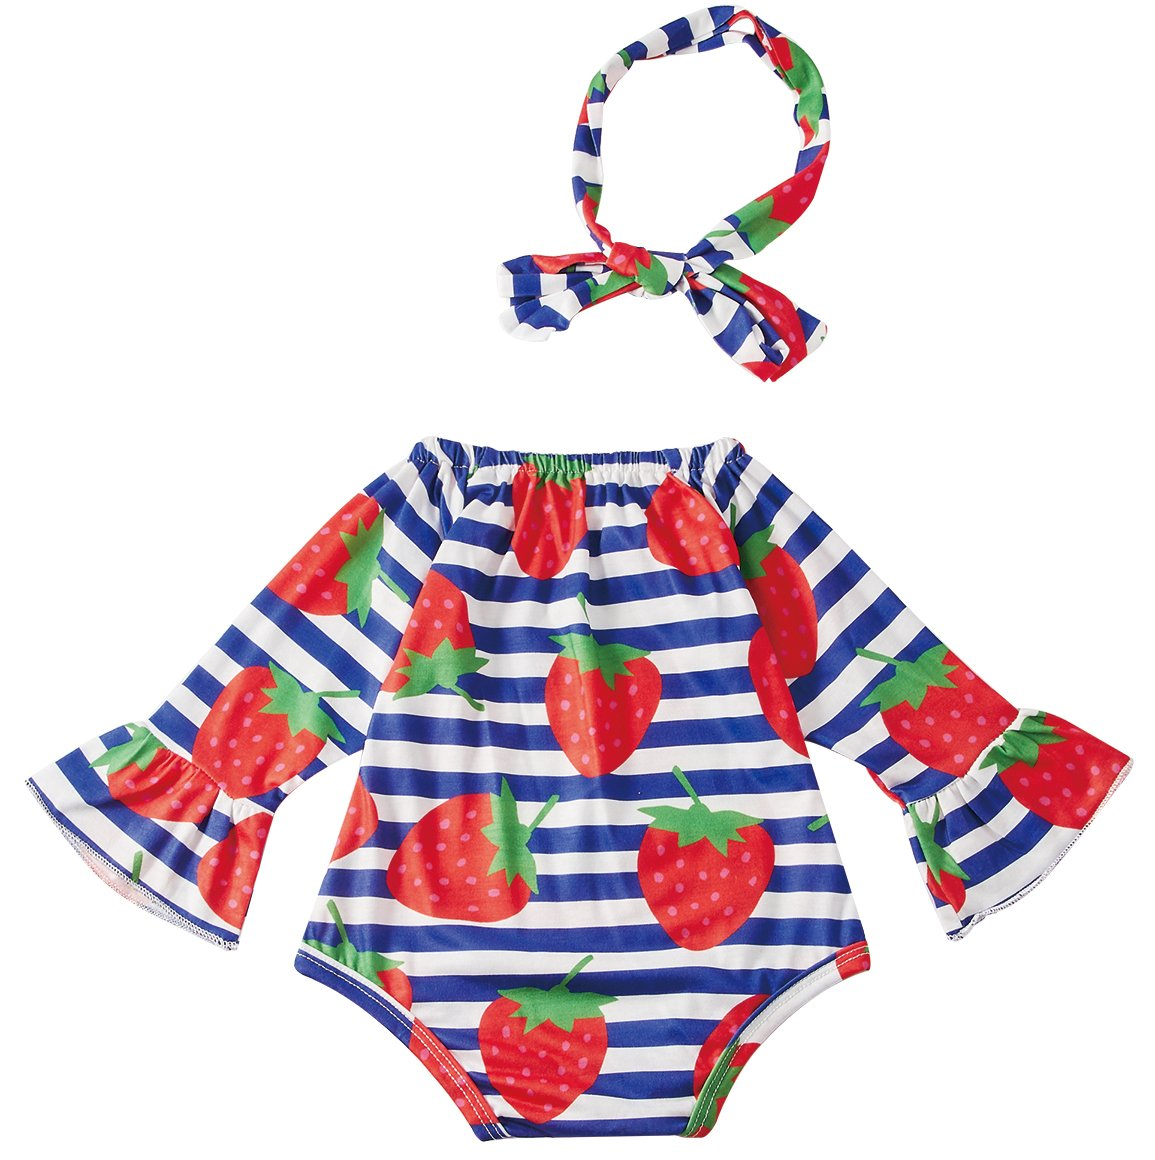 Leapparel Vintage Jumpsuit Long Sleeve Boy Summer Outfit Baby Girl Whlte and Blue Stripe Dress Button Tops, Strawberry, 6-12 Months/Size 80